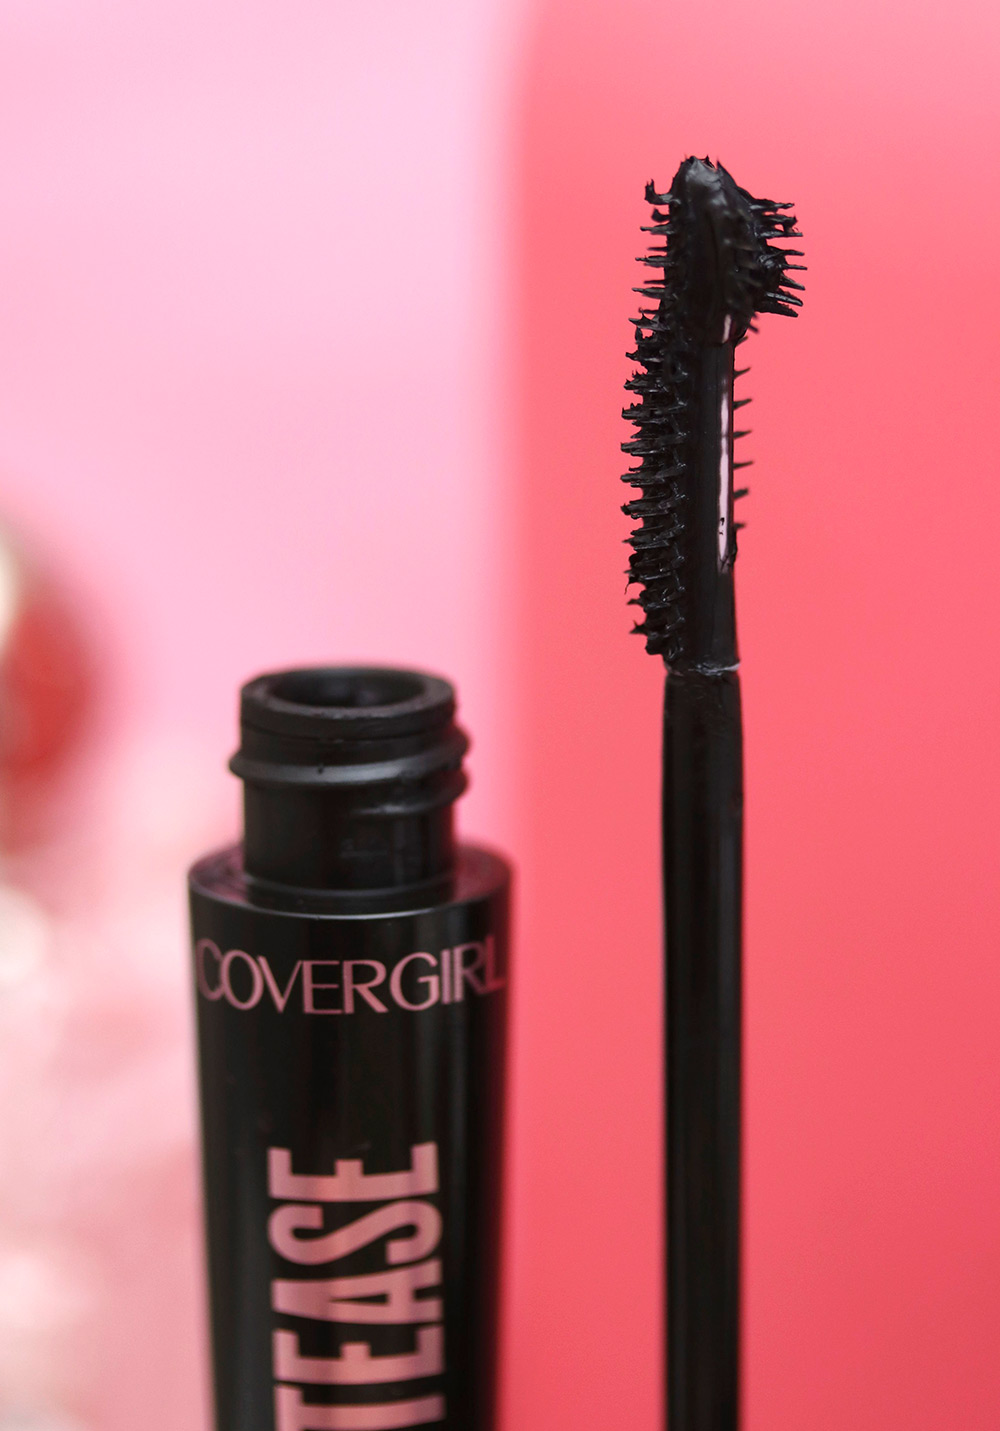 covergirl total tease mascara wand